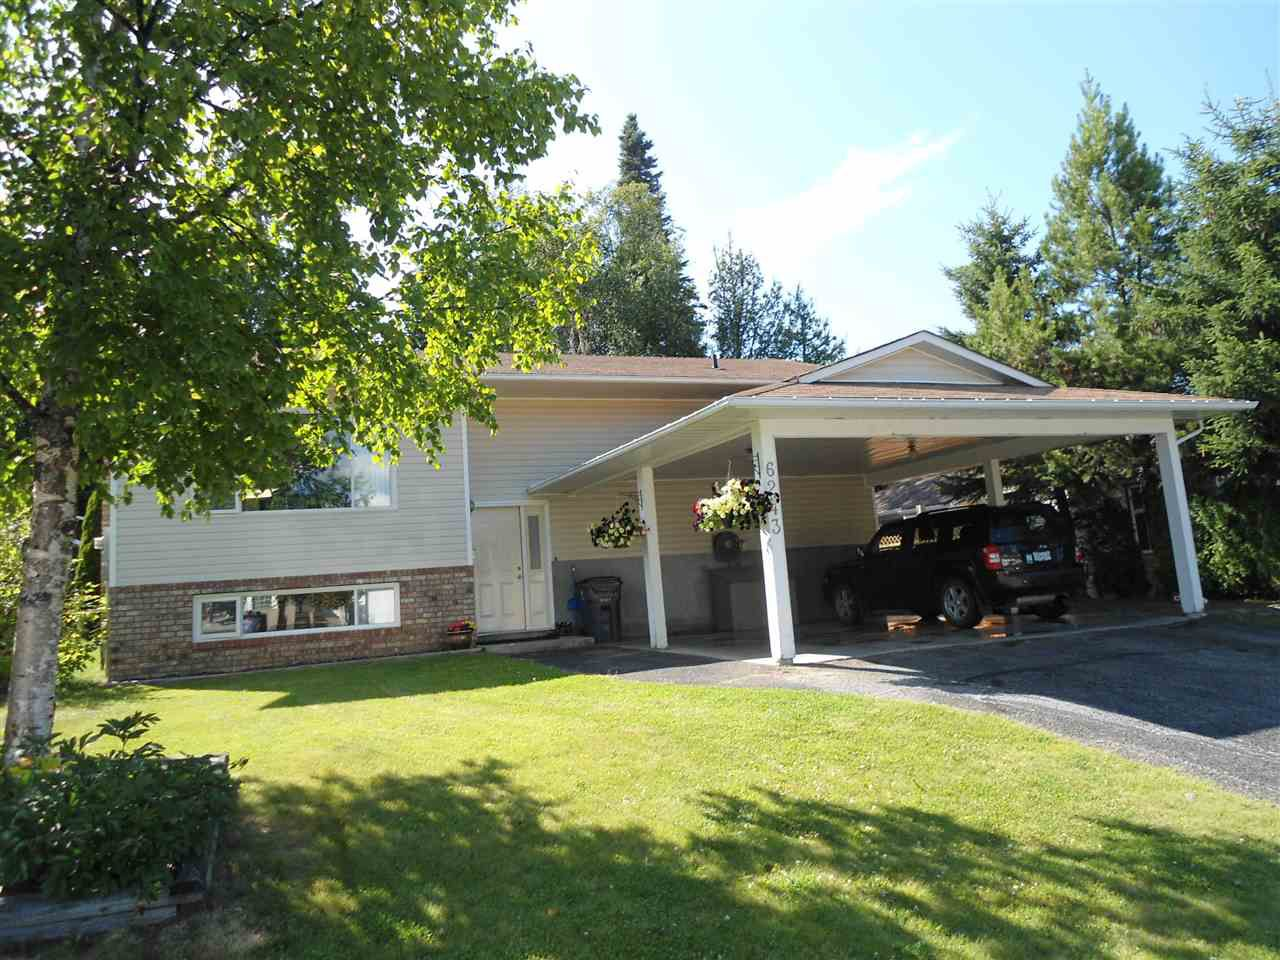 Main Photo: 6243 BERGER Crescent in Prince George: Hart Highlands House for sale (PG City North (Zone 73))  : MLS®# R2097859